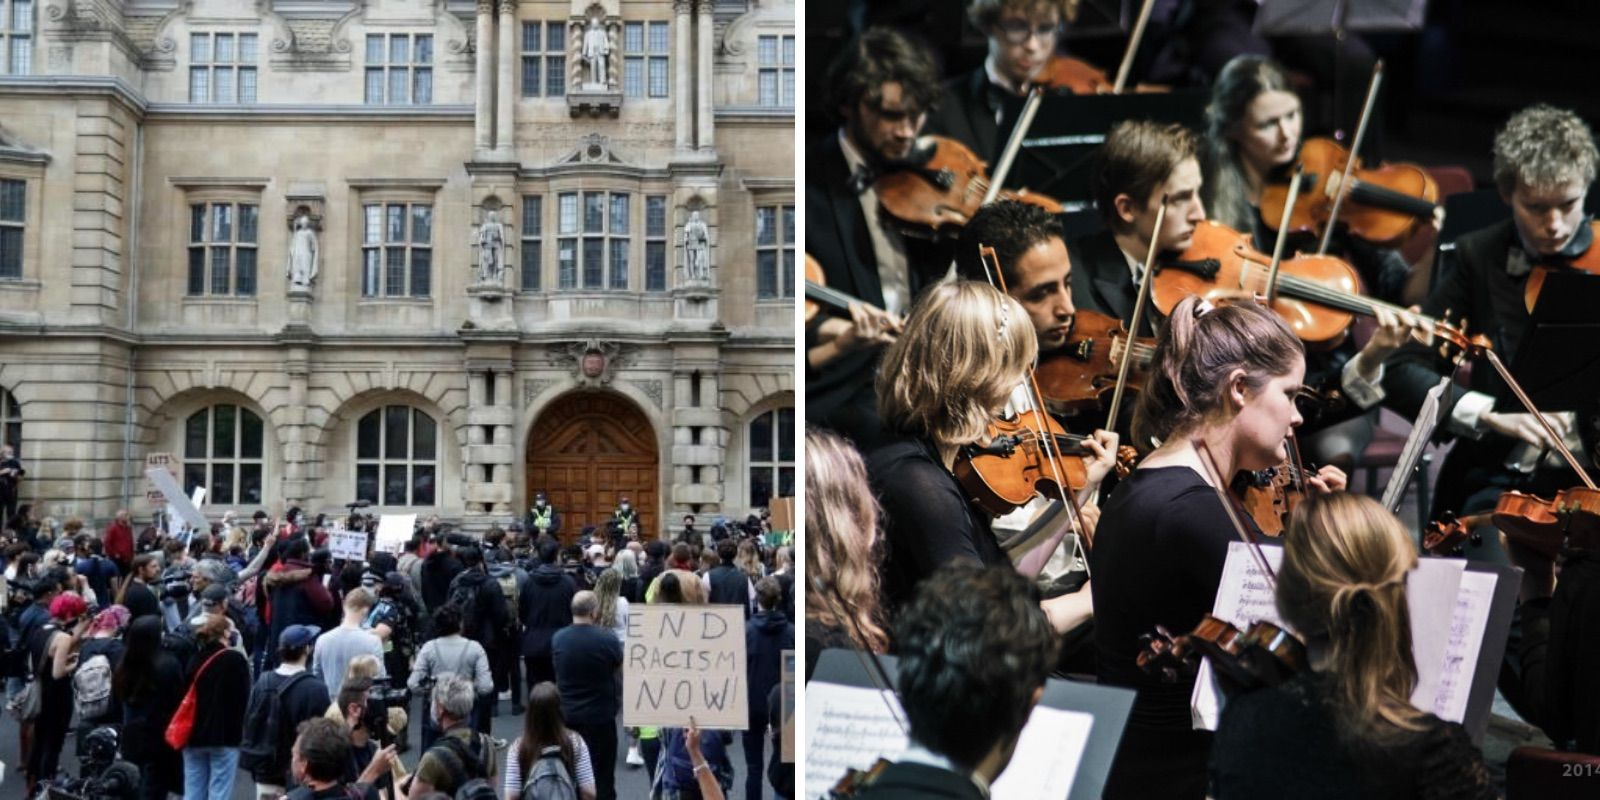 Oxford University staff propose to 'rethink' teaching sheet music because of its 'complicity in white supremacy'